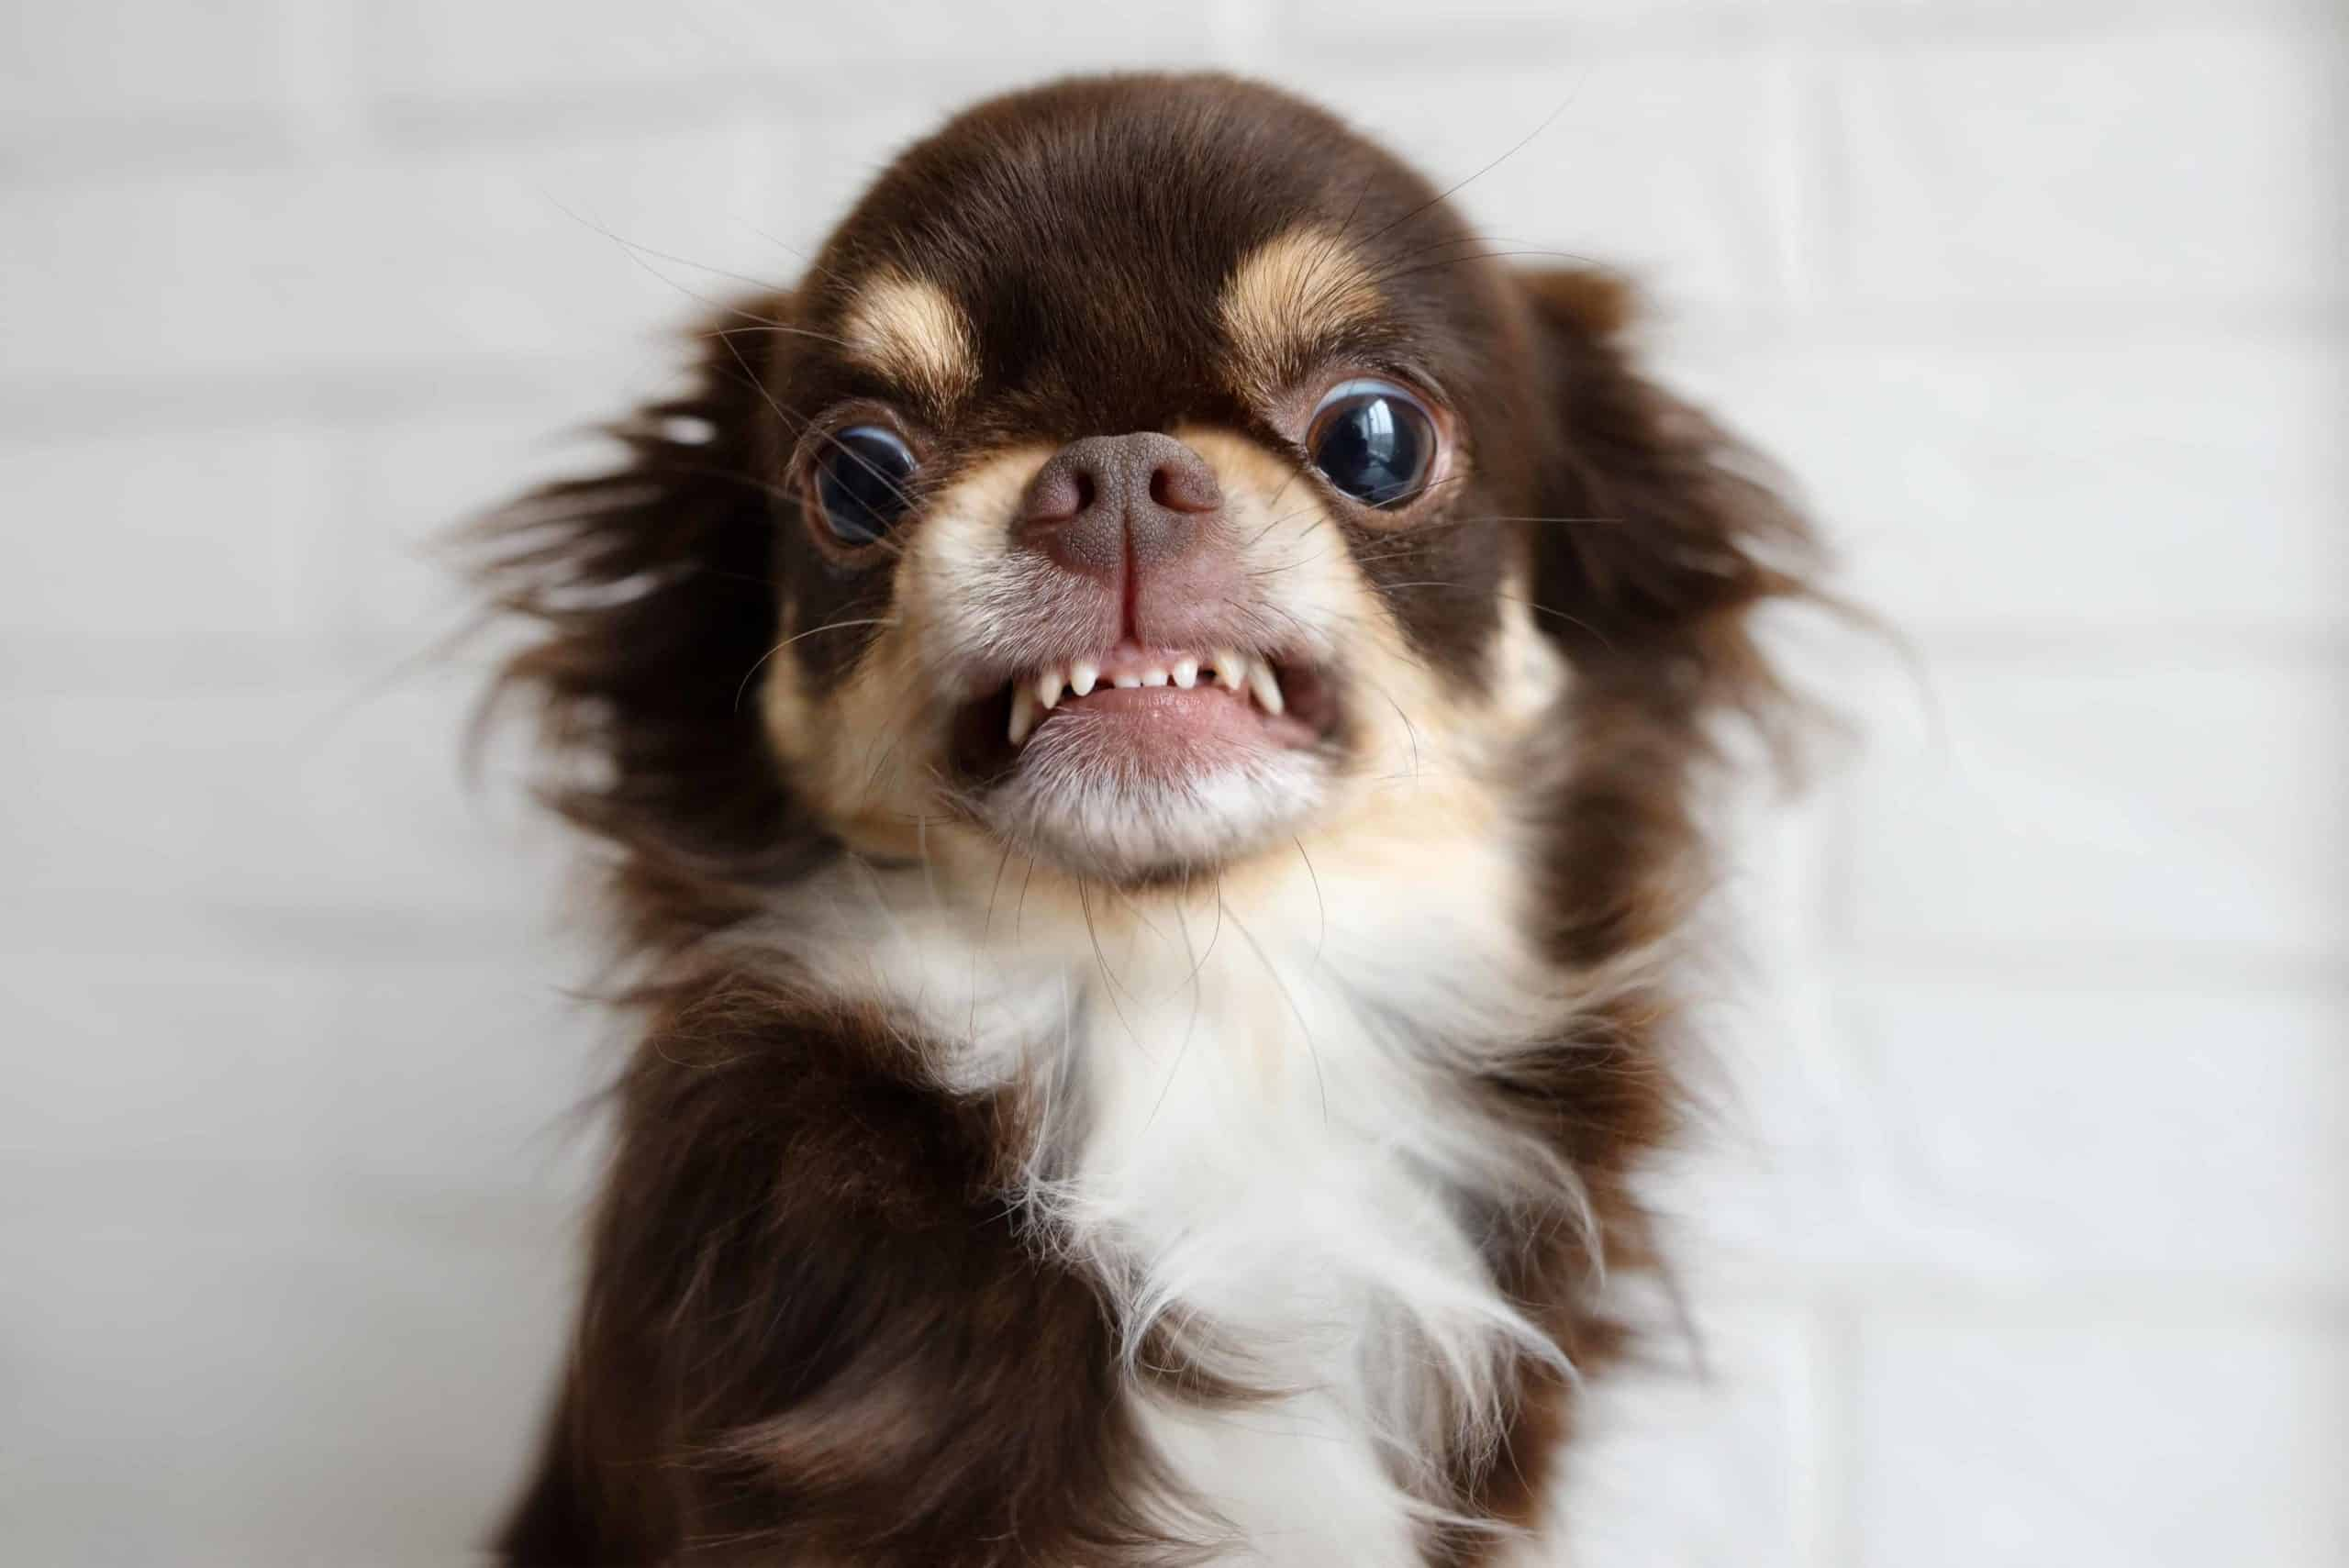 Angry Chihuahua bares its teeth. Negative dog breed stereotypes can make dogs less appealing and discourage people from adopting them. Review the top five dog breed stereotypes.